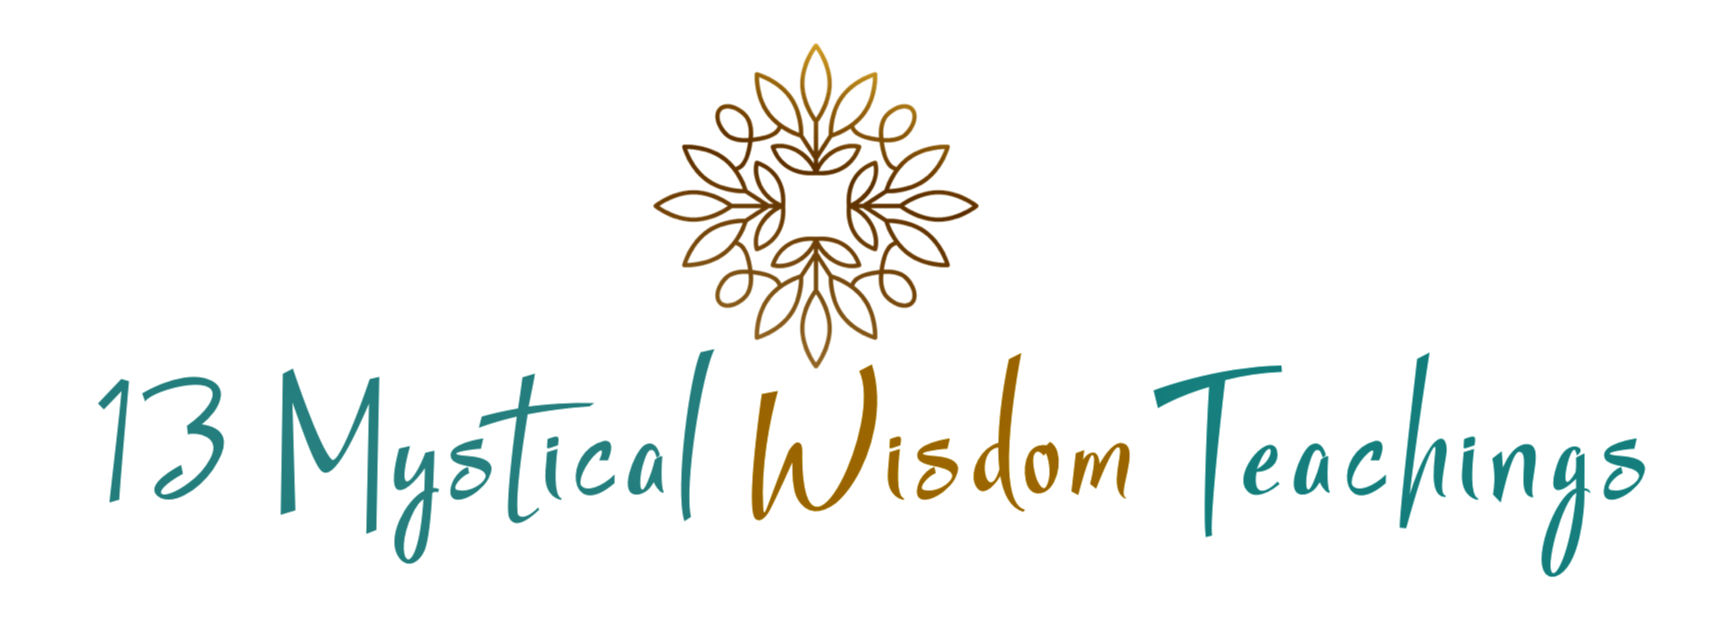 13 Mystical Wisdom Teachings